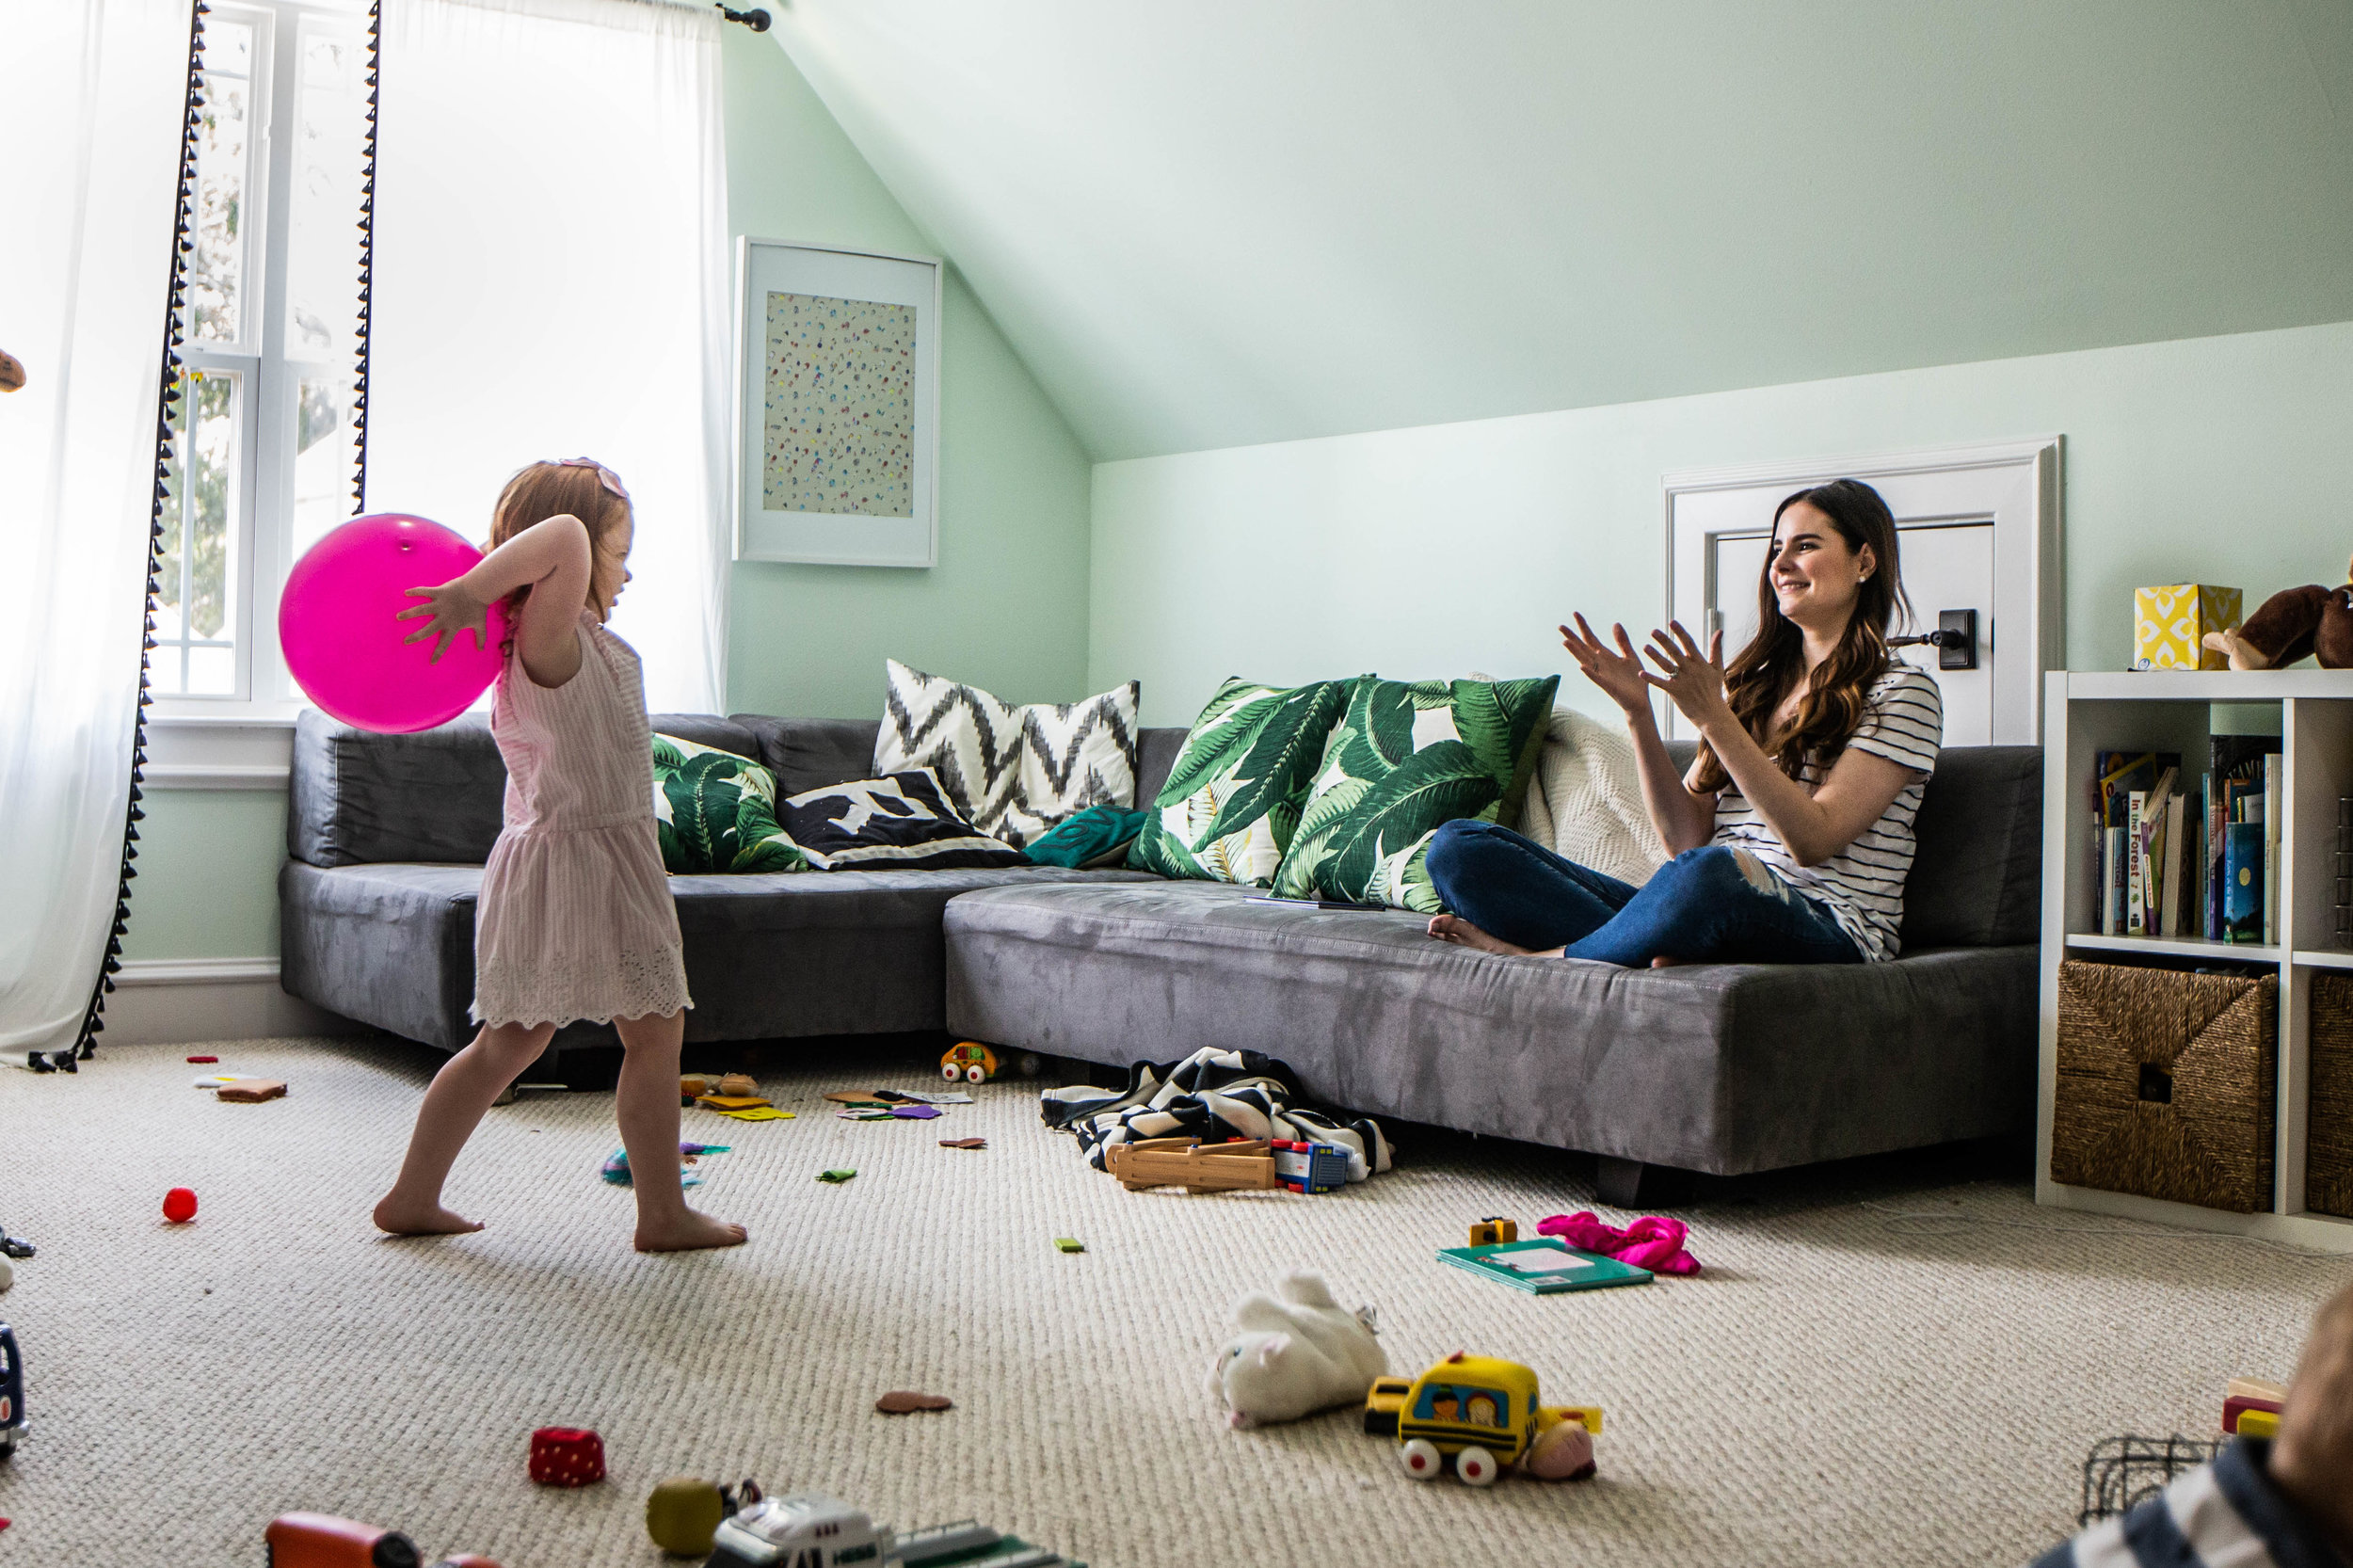 family playing at home together-80.jpg